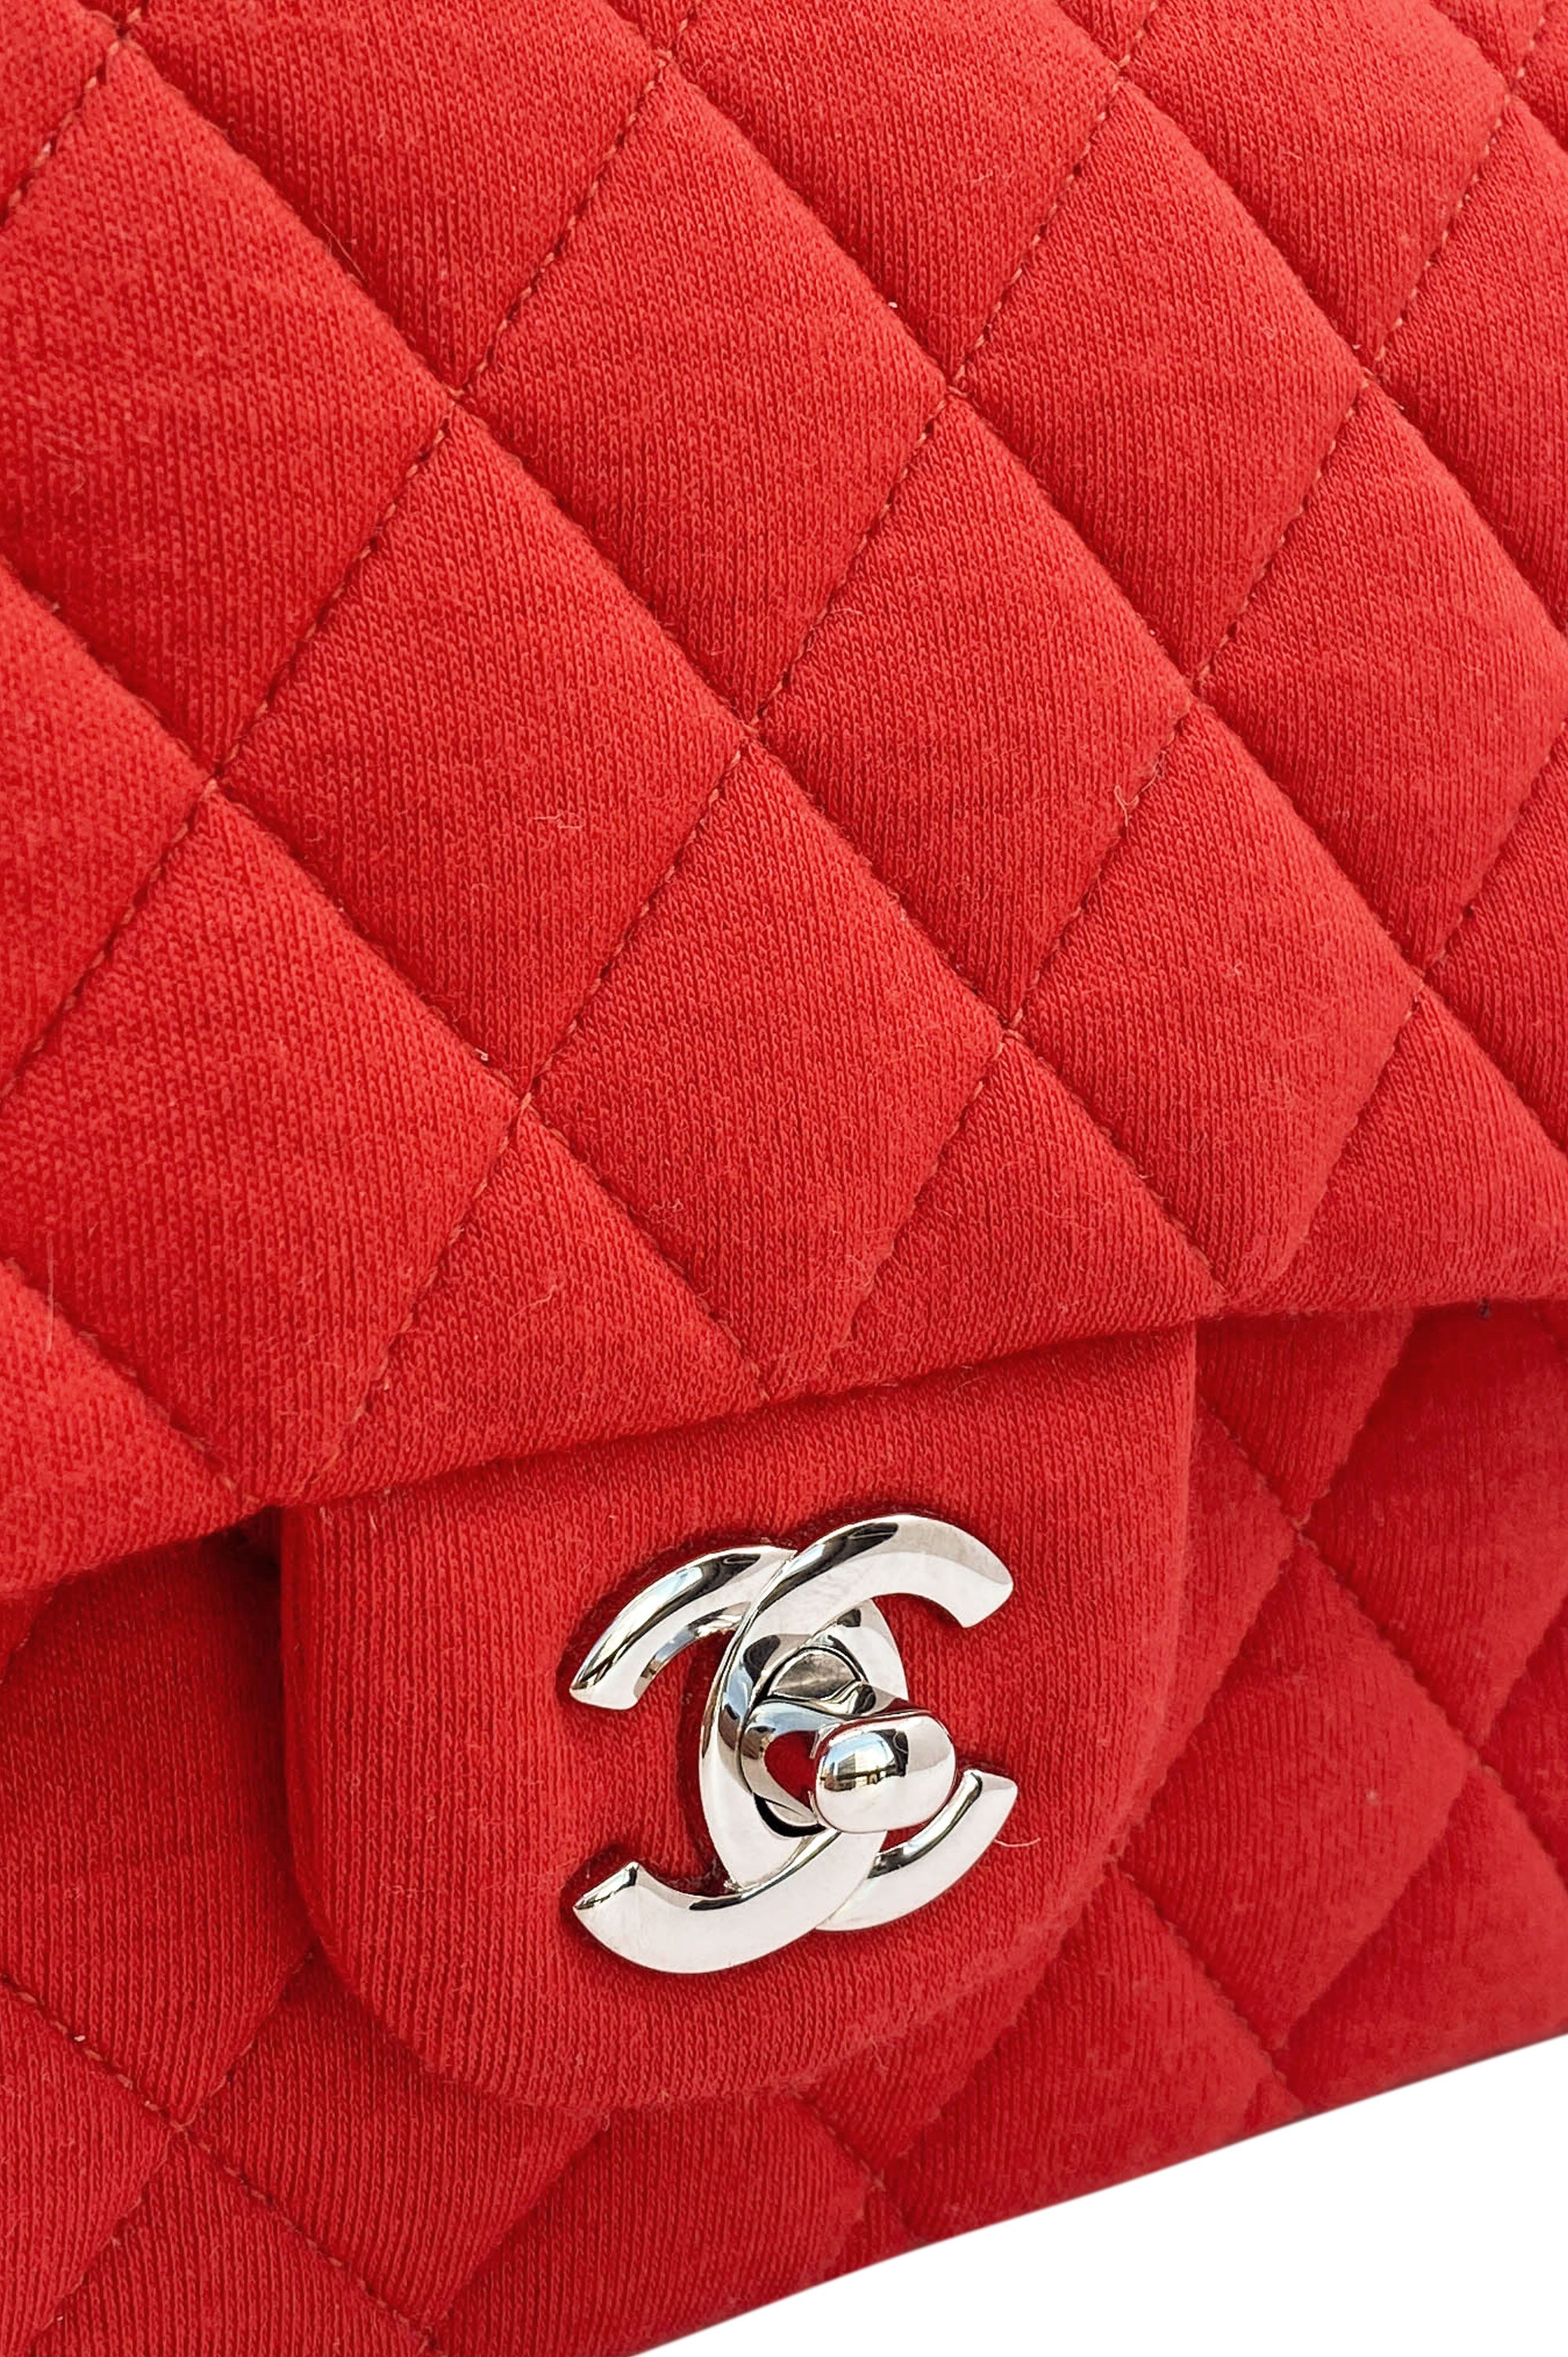 CHANEL Double Flap Jersey Red